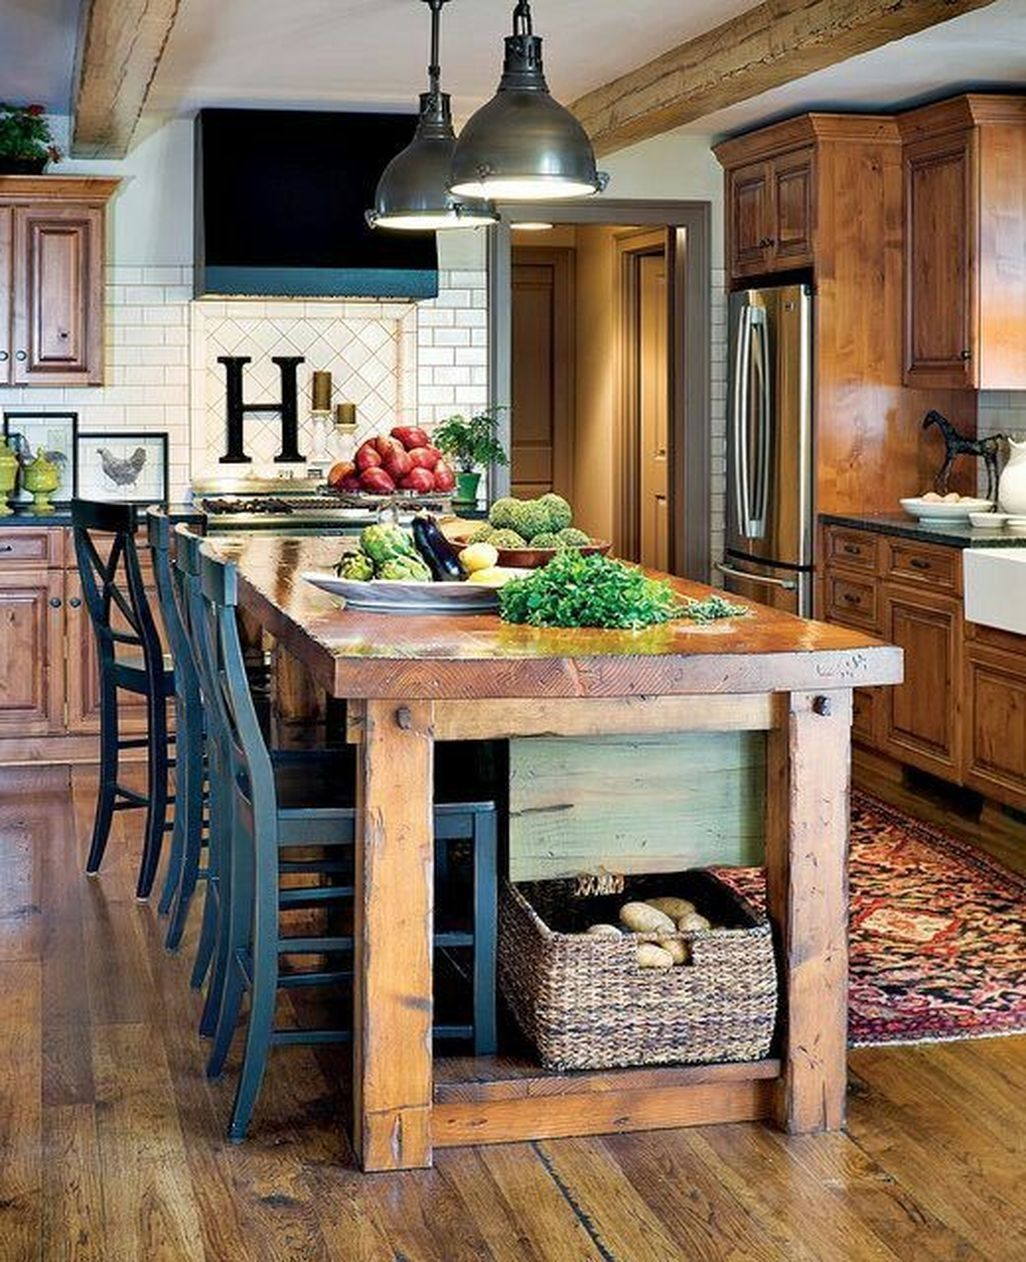 Küchendesign 2018  awesome rustic kitchen island design ideas  pinterest  rustic